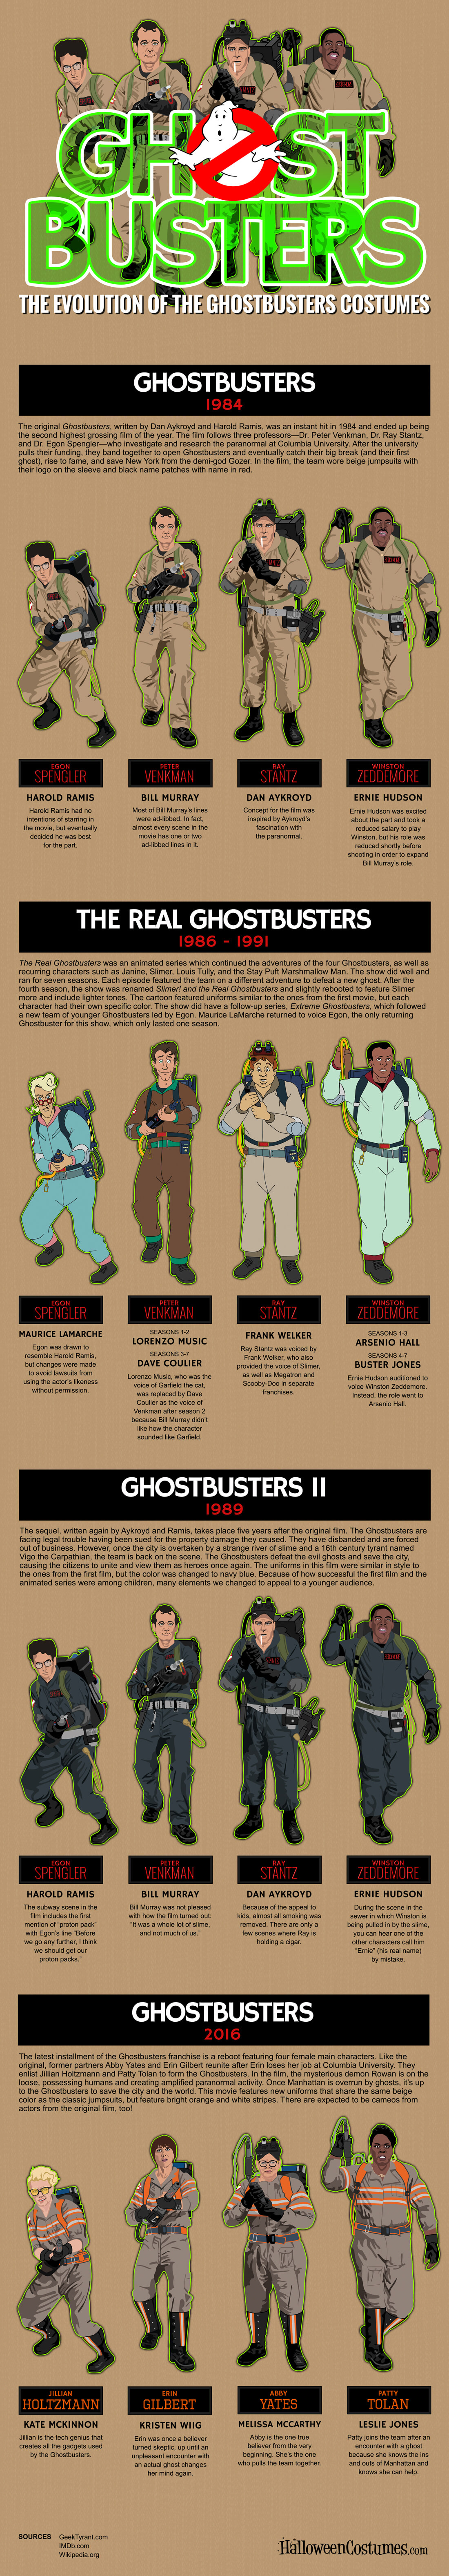 Ghostbuster Costumes Evolution Infographic